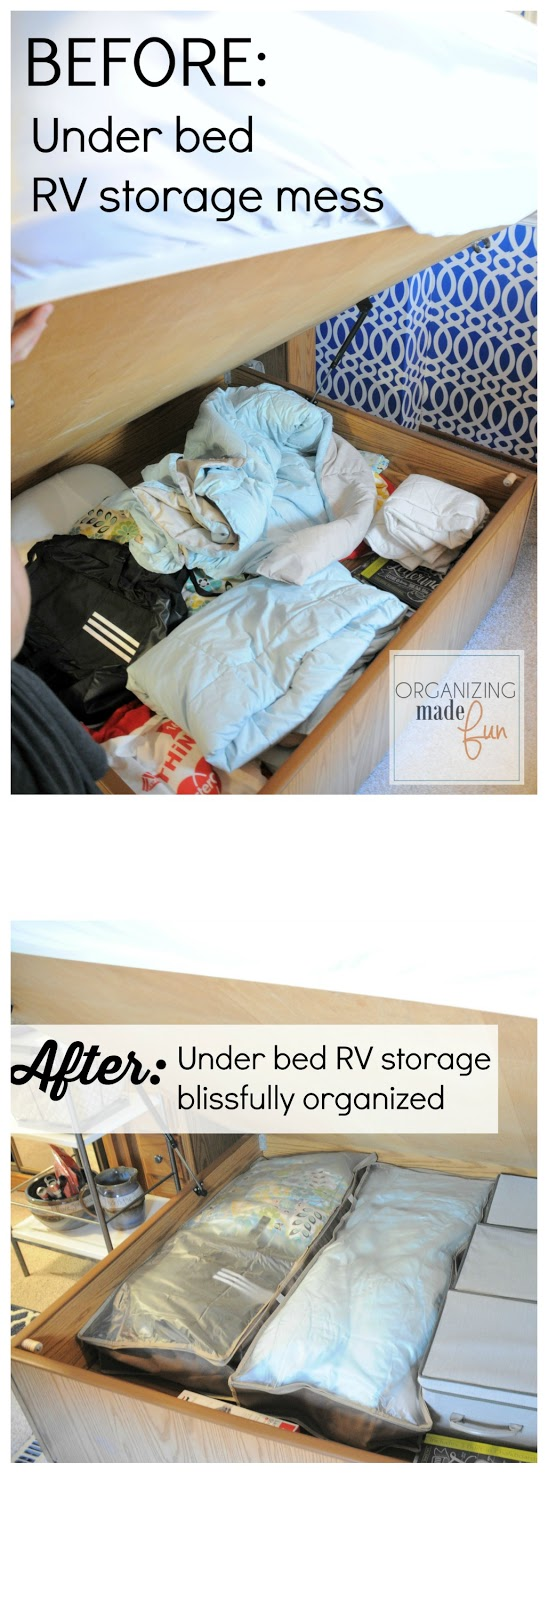 AFTER: Under bed RV storage blissfully organized